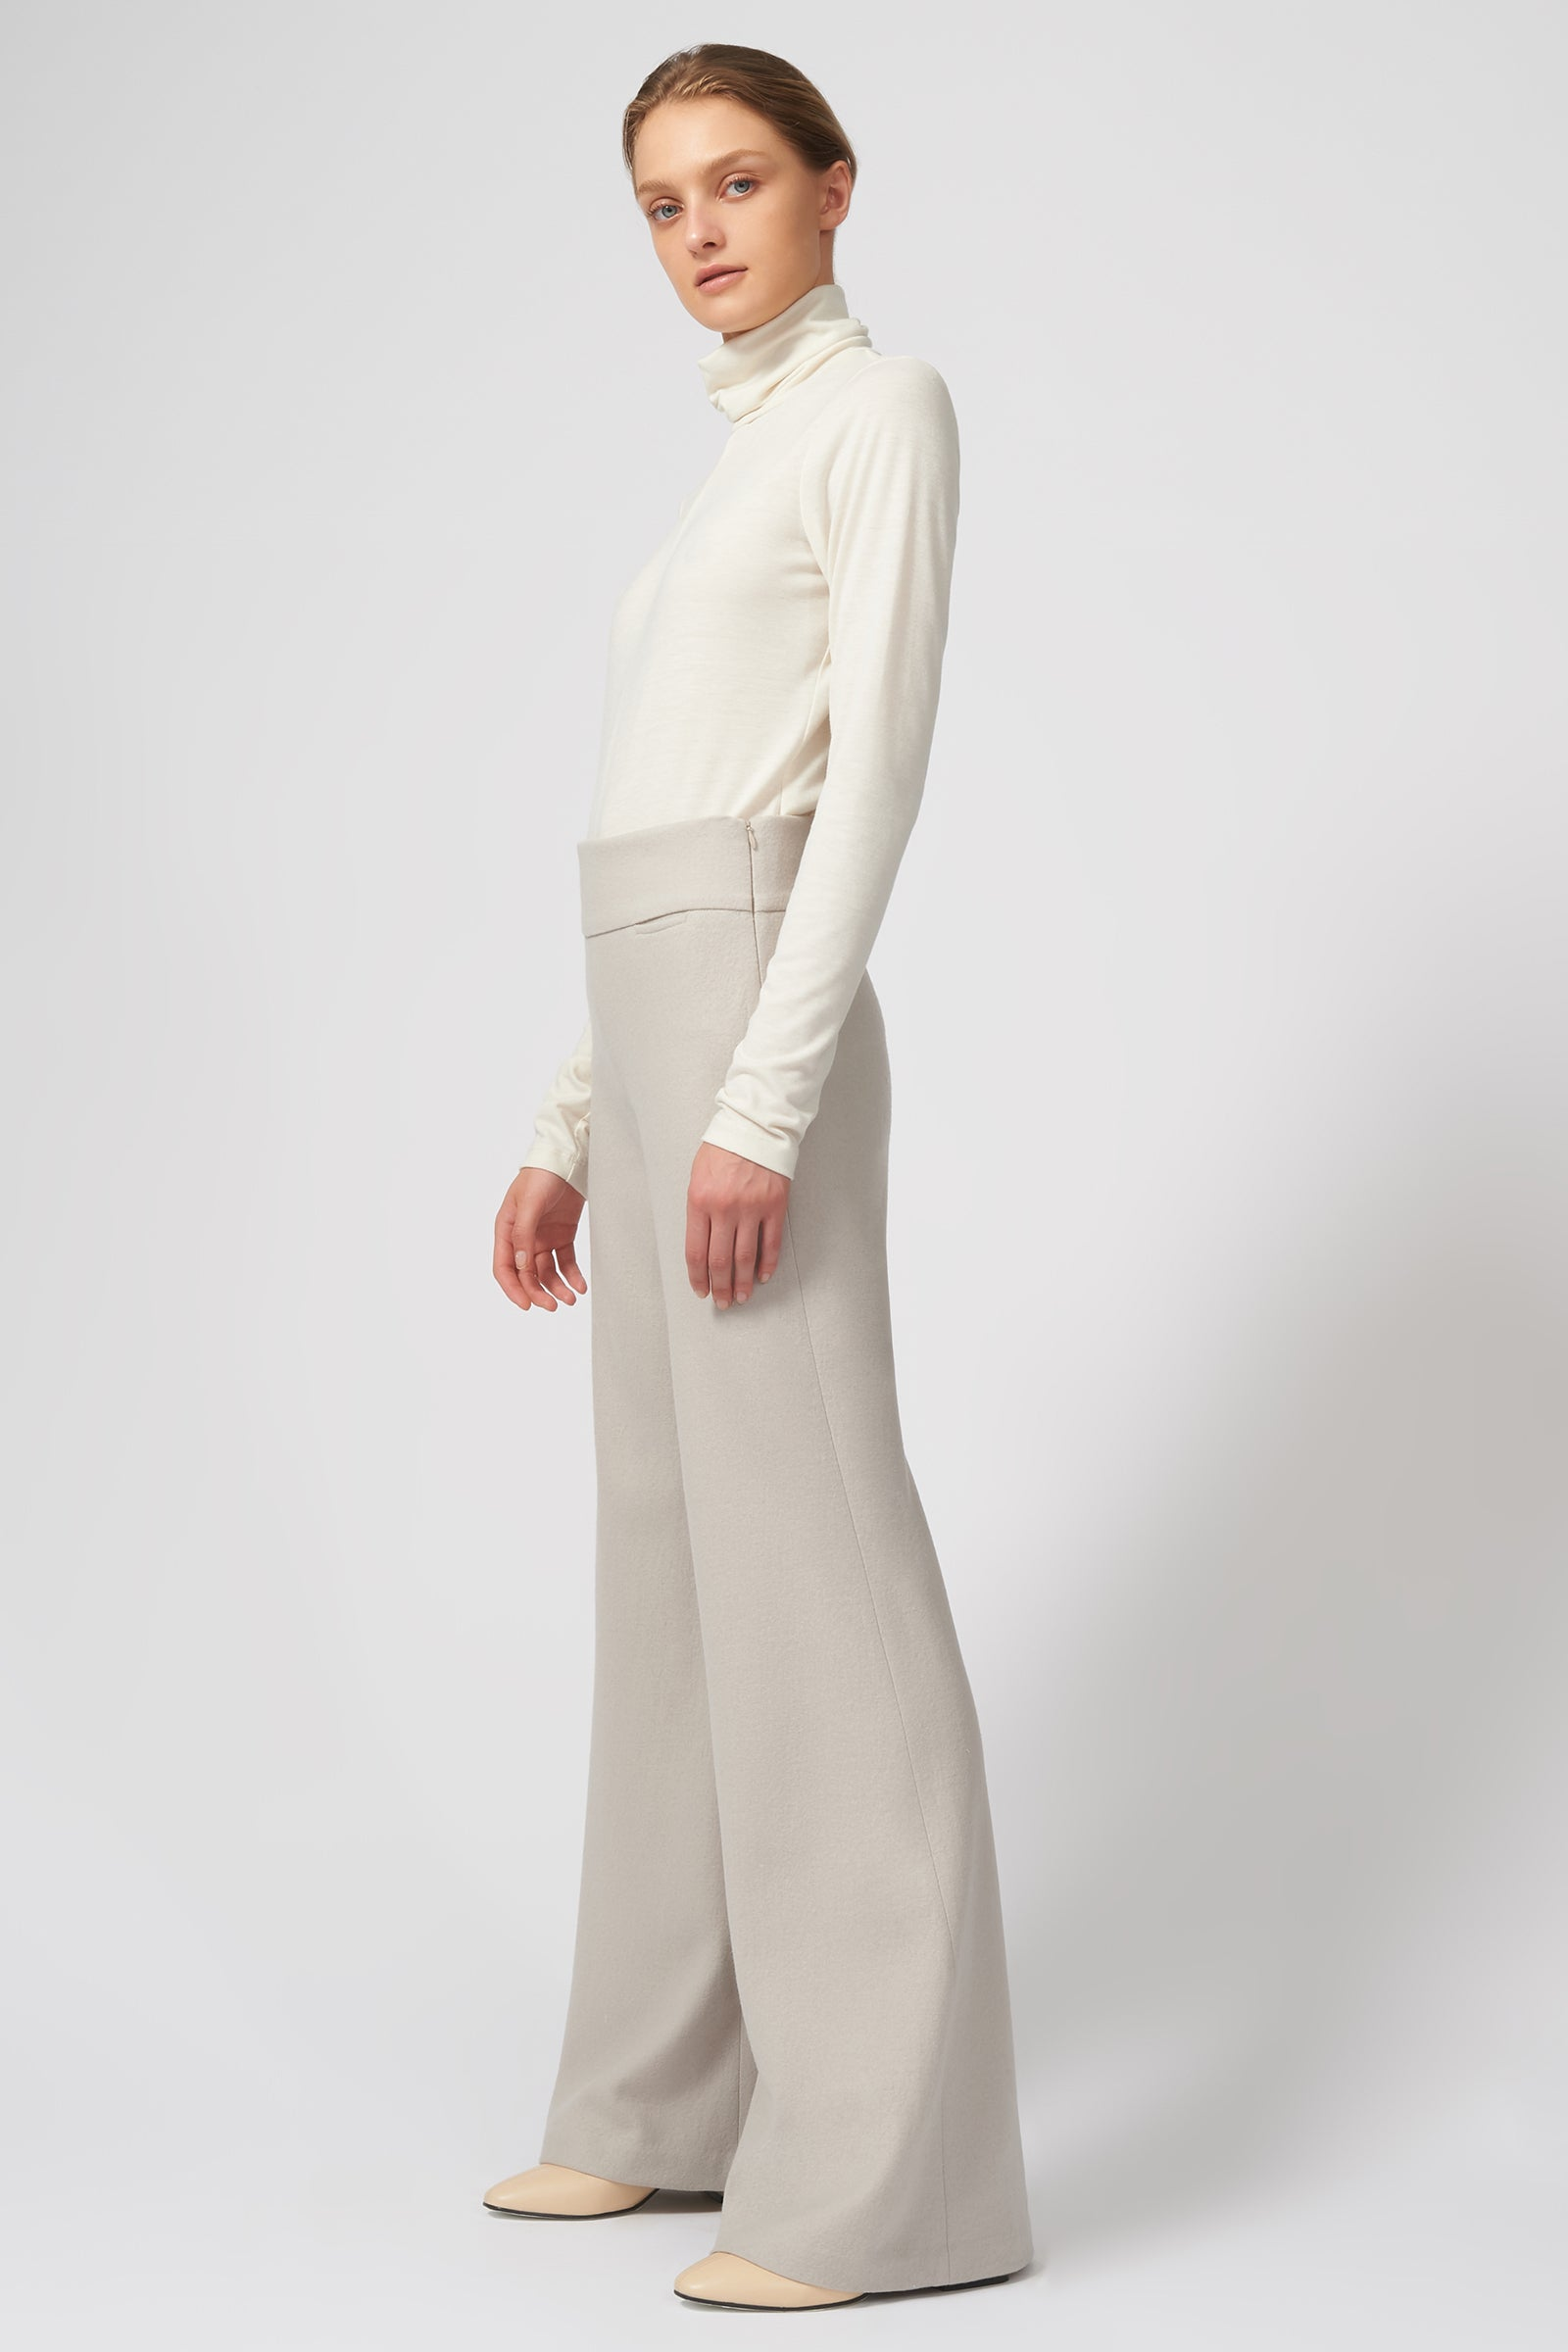 Kal Rieman Felted Jersey Wide Leg Pant in Mink on Model Full Side View